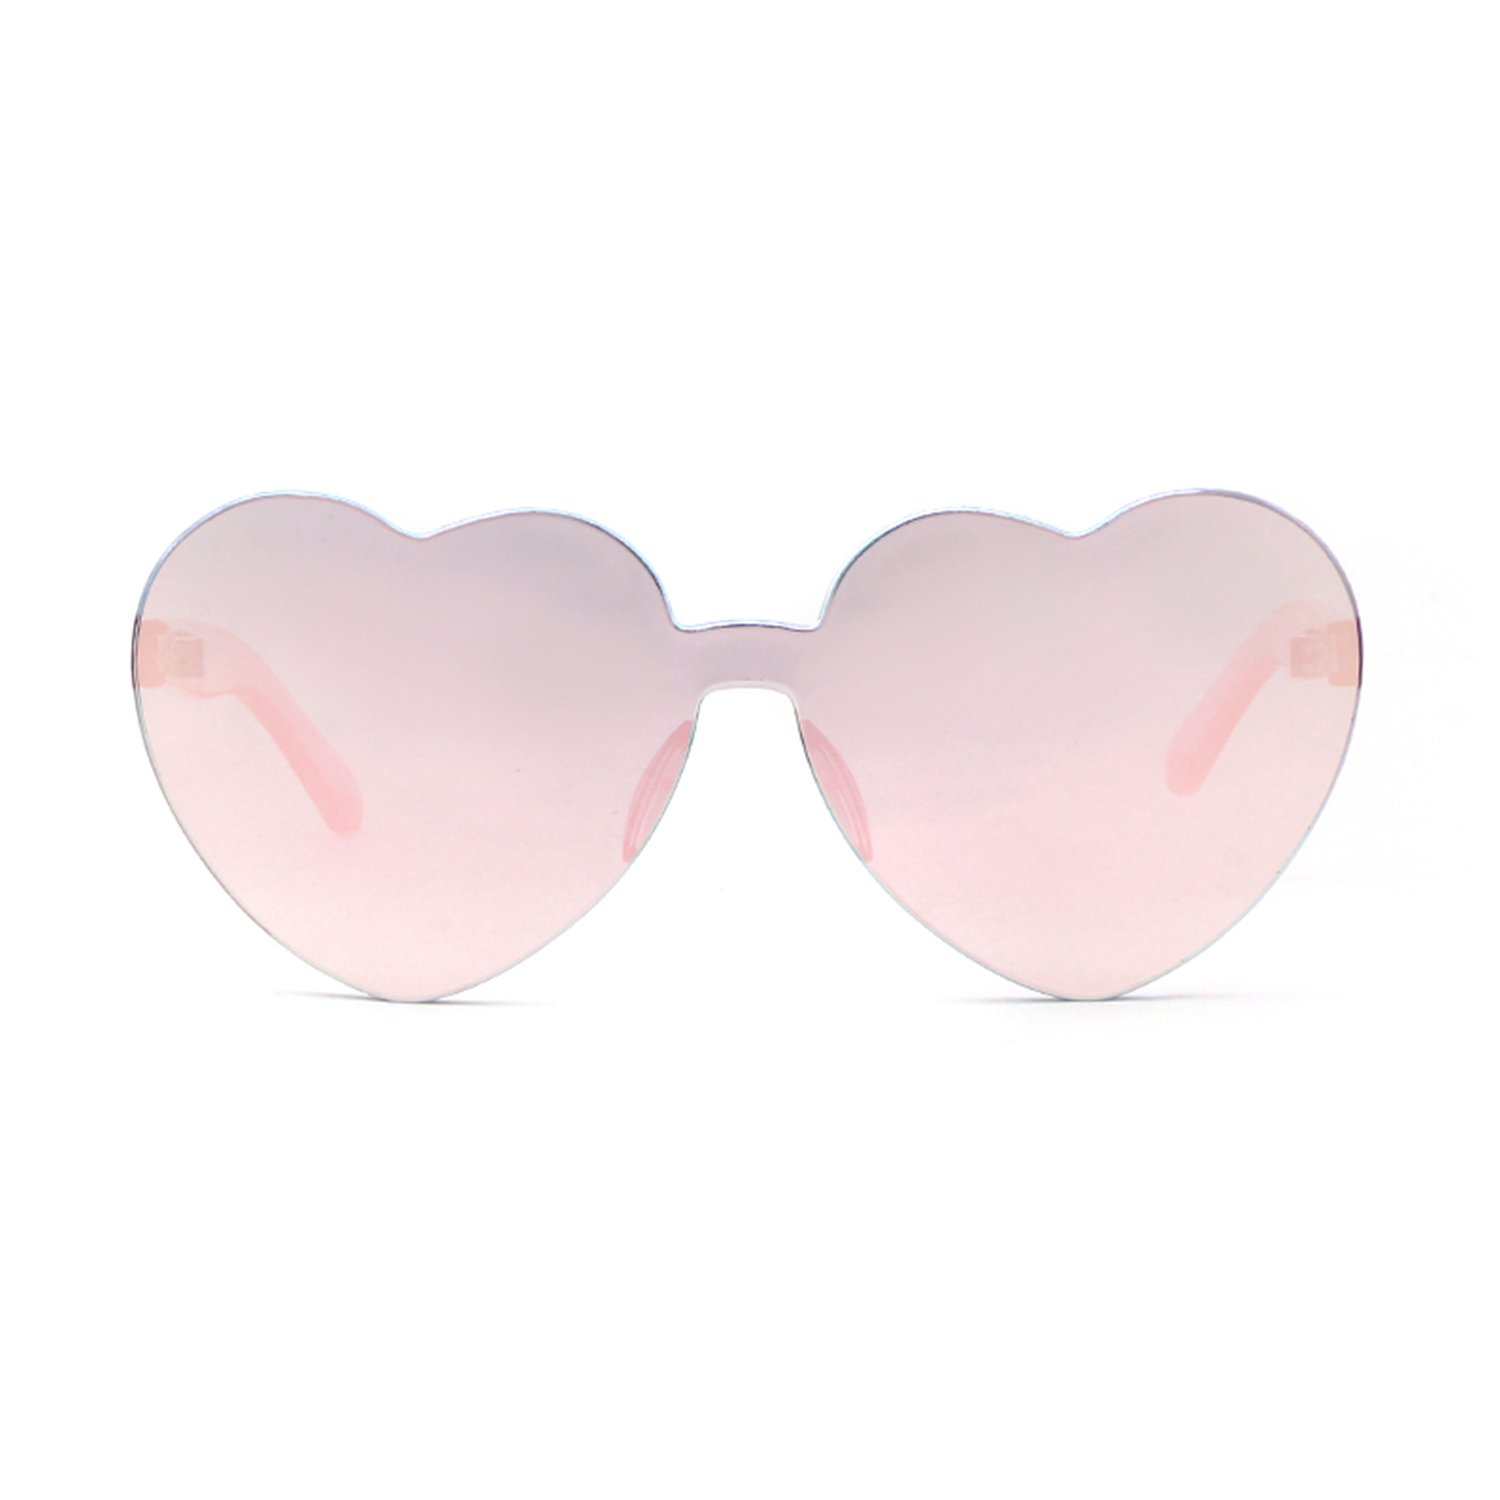 d72593e3589 ADEWU Love Heart Sunglasses Women Girl Rimless Candy Color One Piece Eyewear   Amazon.co.uk  Clothing